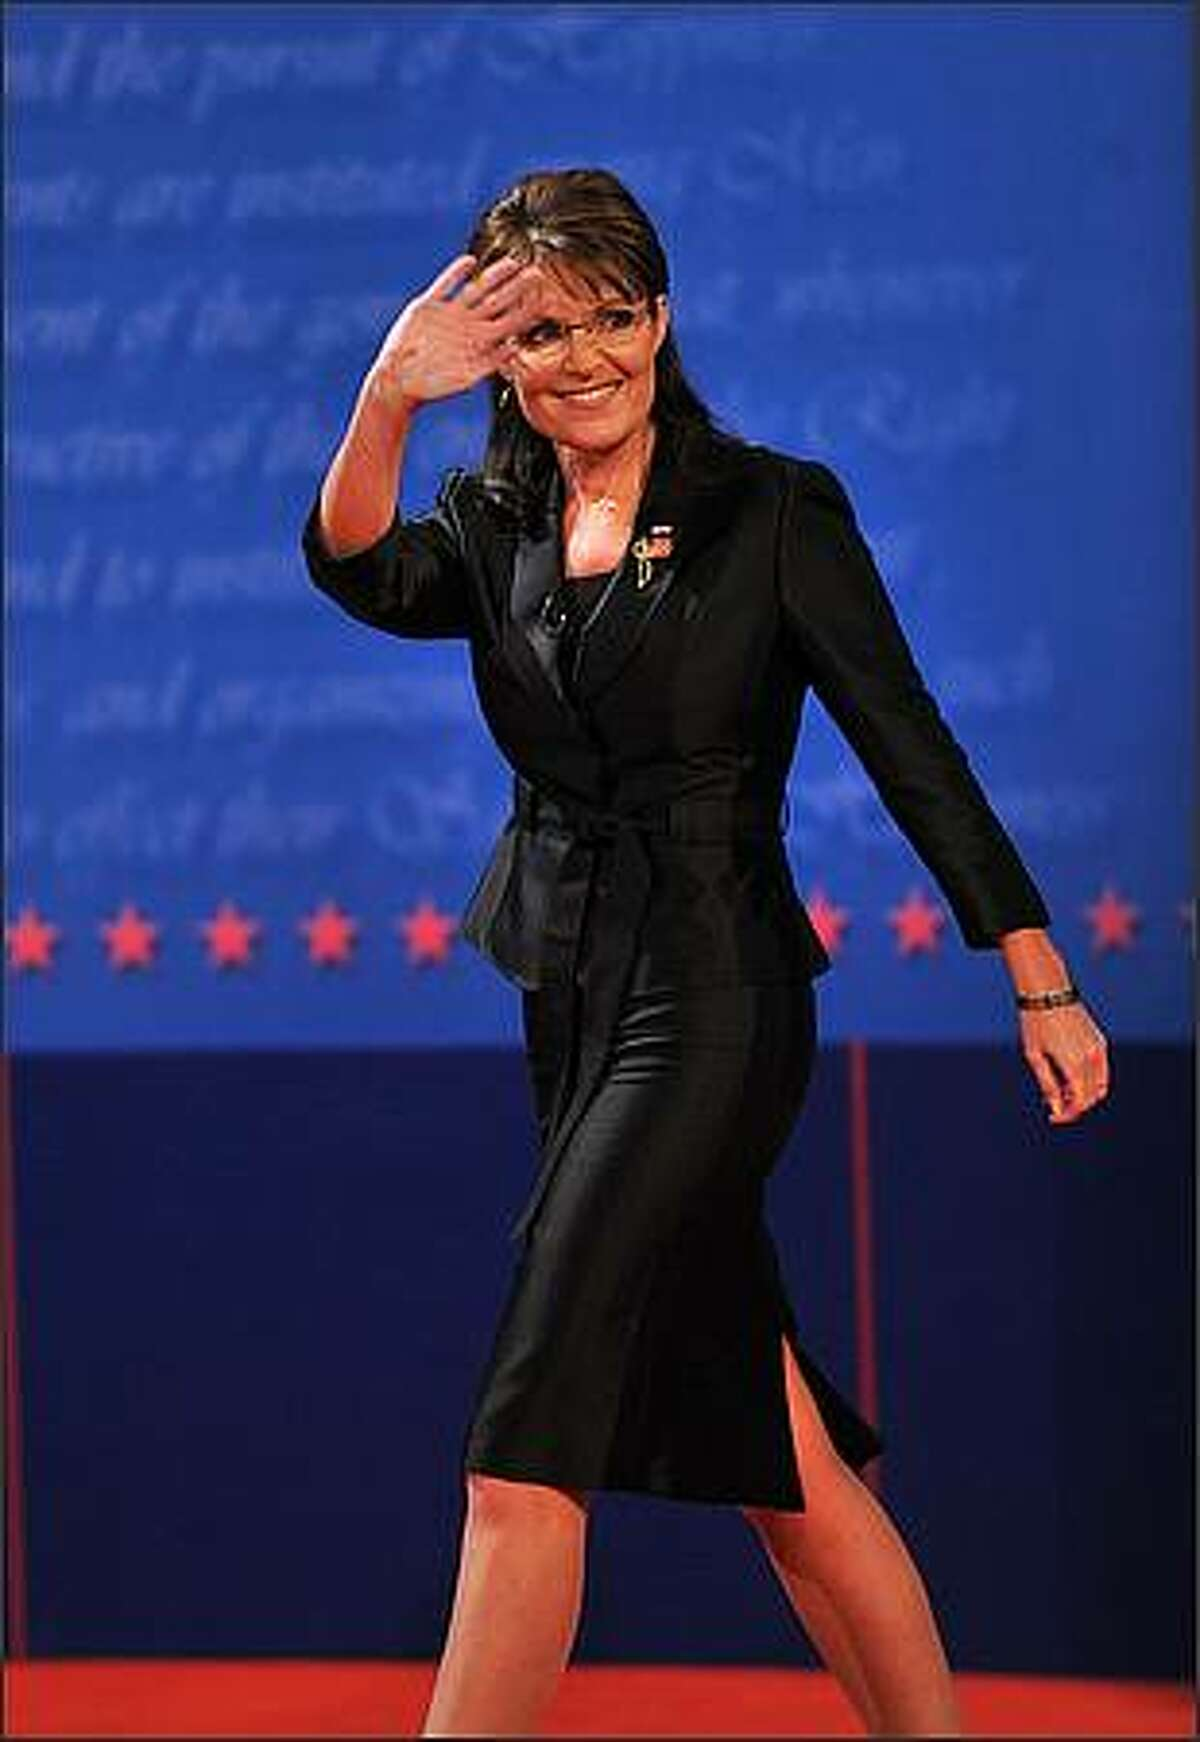 Republican Sarah Palin arrives on stage for her vice presidential debate with Democrat Joseph Biden October 2, 2008 at Washington University in St. Louis, Missouri. (PAUL J. RICHARDS/AFP/Getty Images)